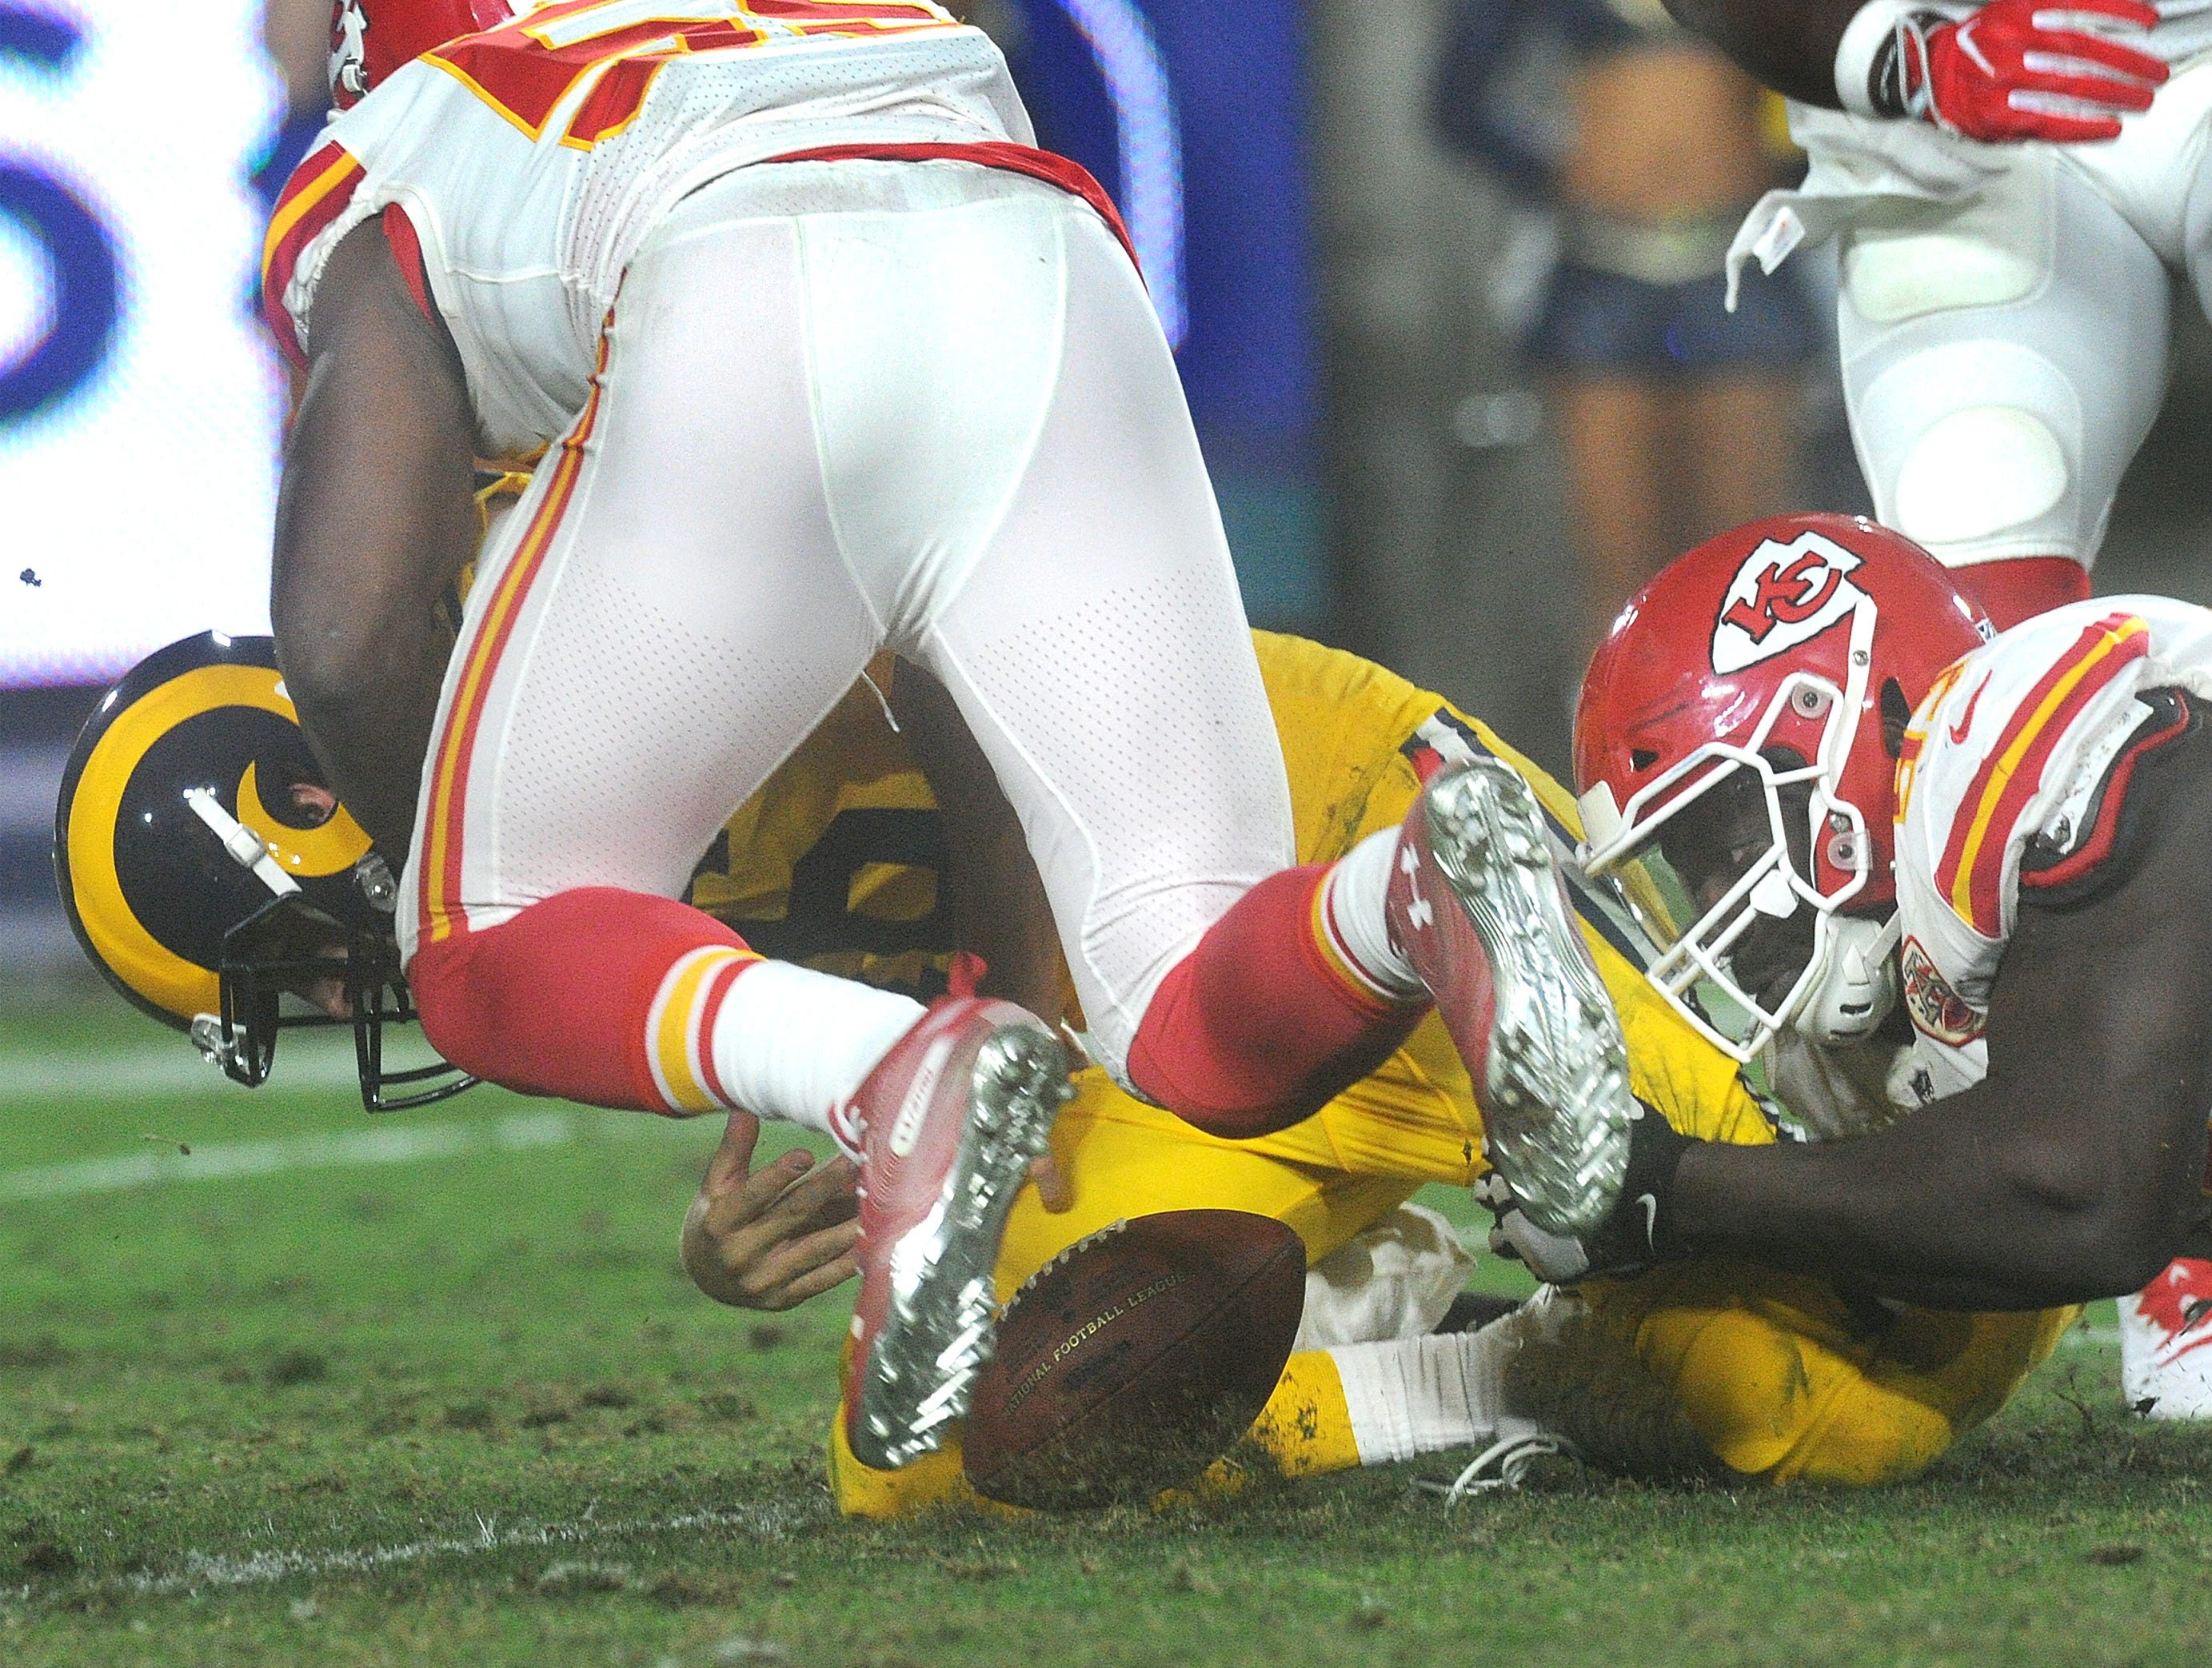 Rams quarterback Jared Goff fumbles away the ball and the Chiefs recovered. But Goff completed 31 of 49 passes for 413 yards and four touchdowns and ran for another in an epic 54-51 battle against the Chiefs on Monday night.